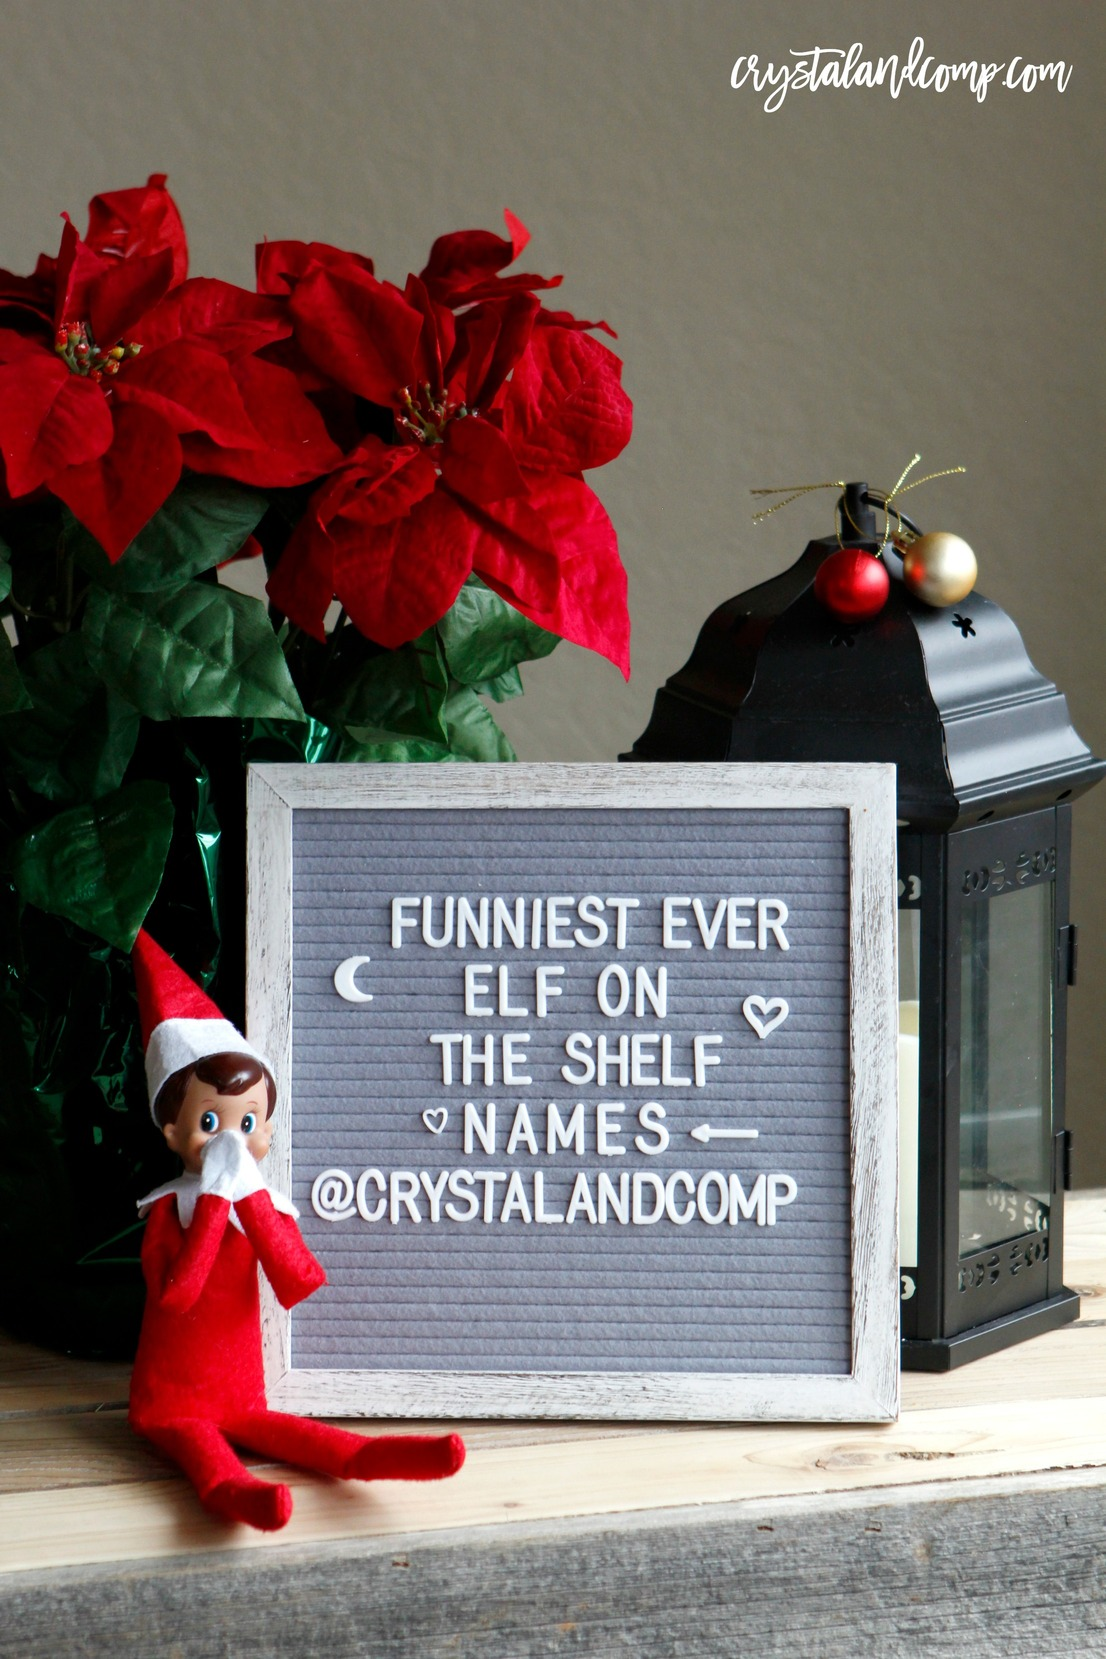 Funny Elf On The Shelf Names